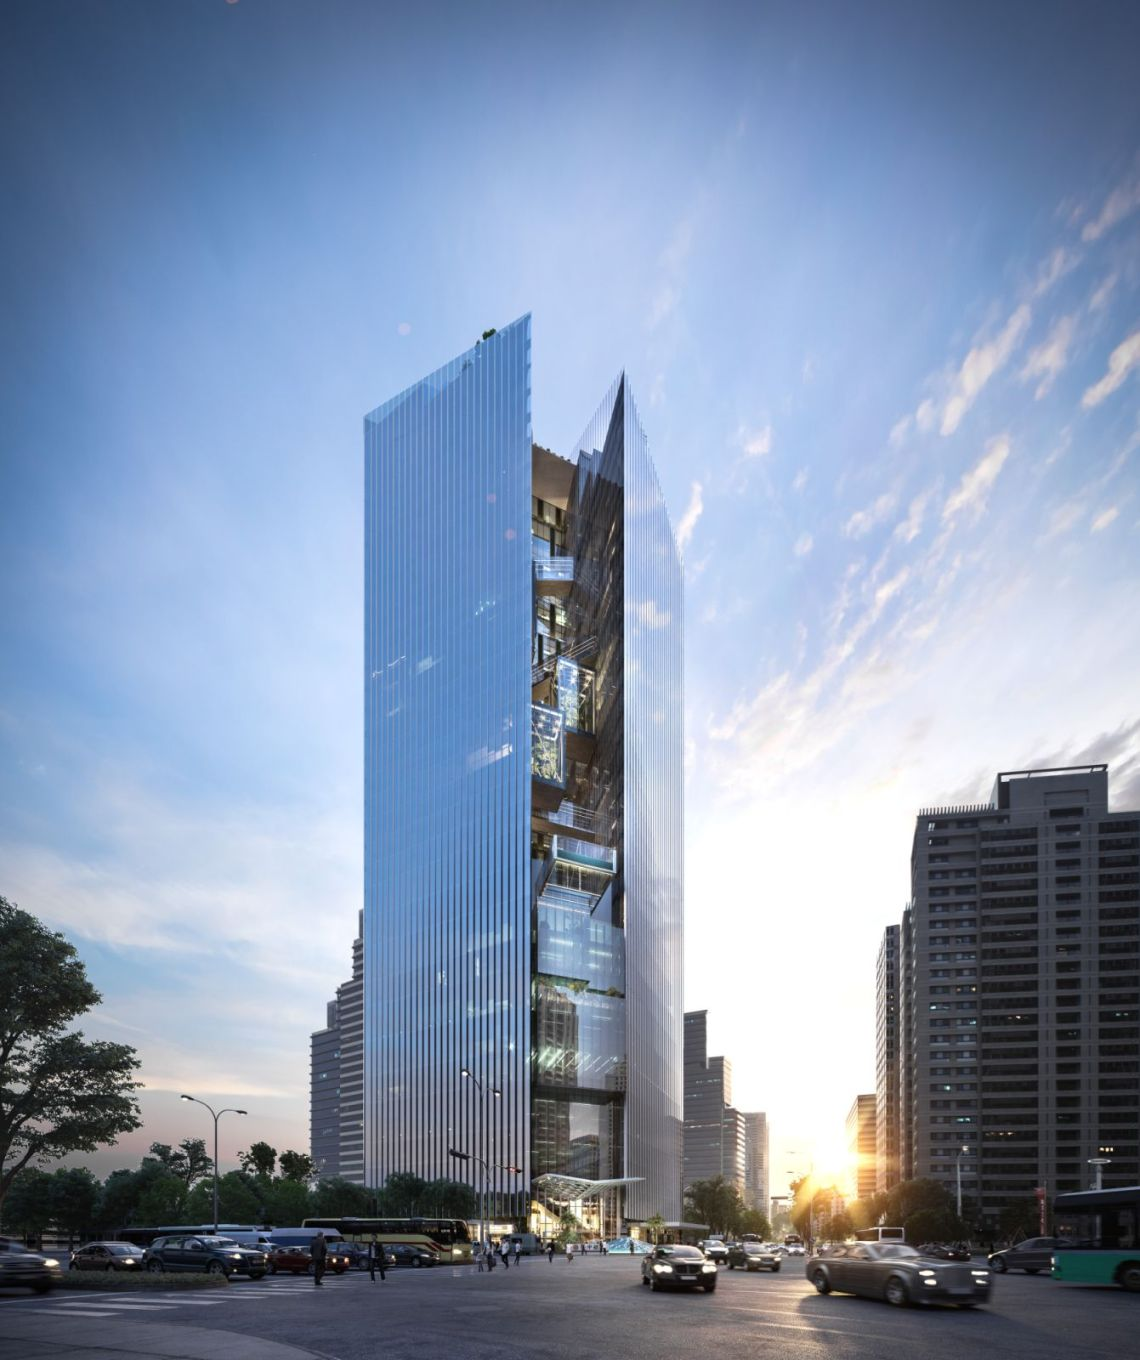 Taichung Commercial Bank